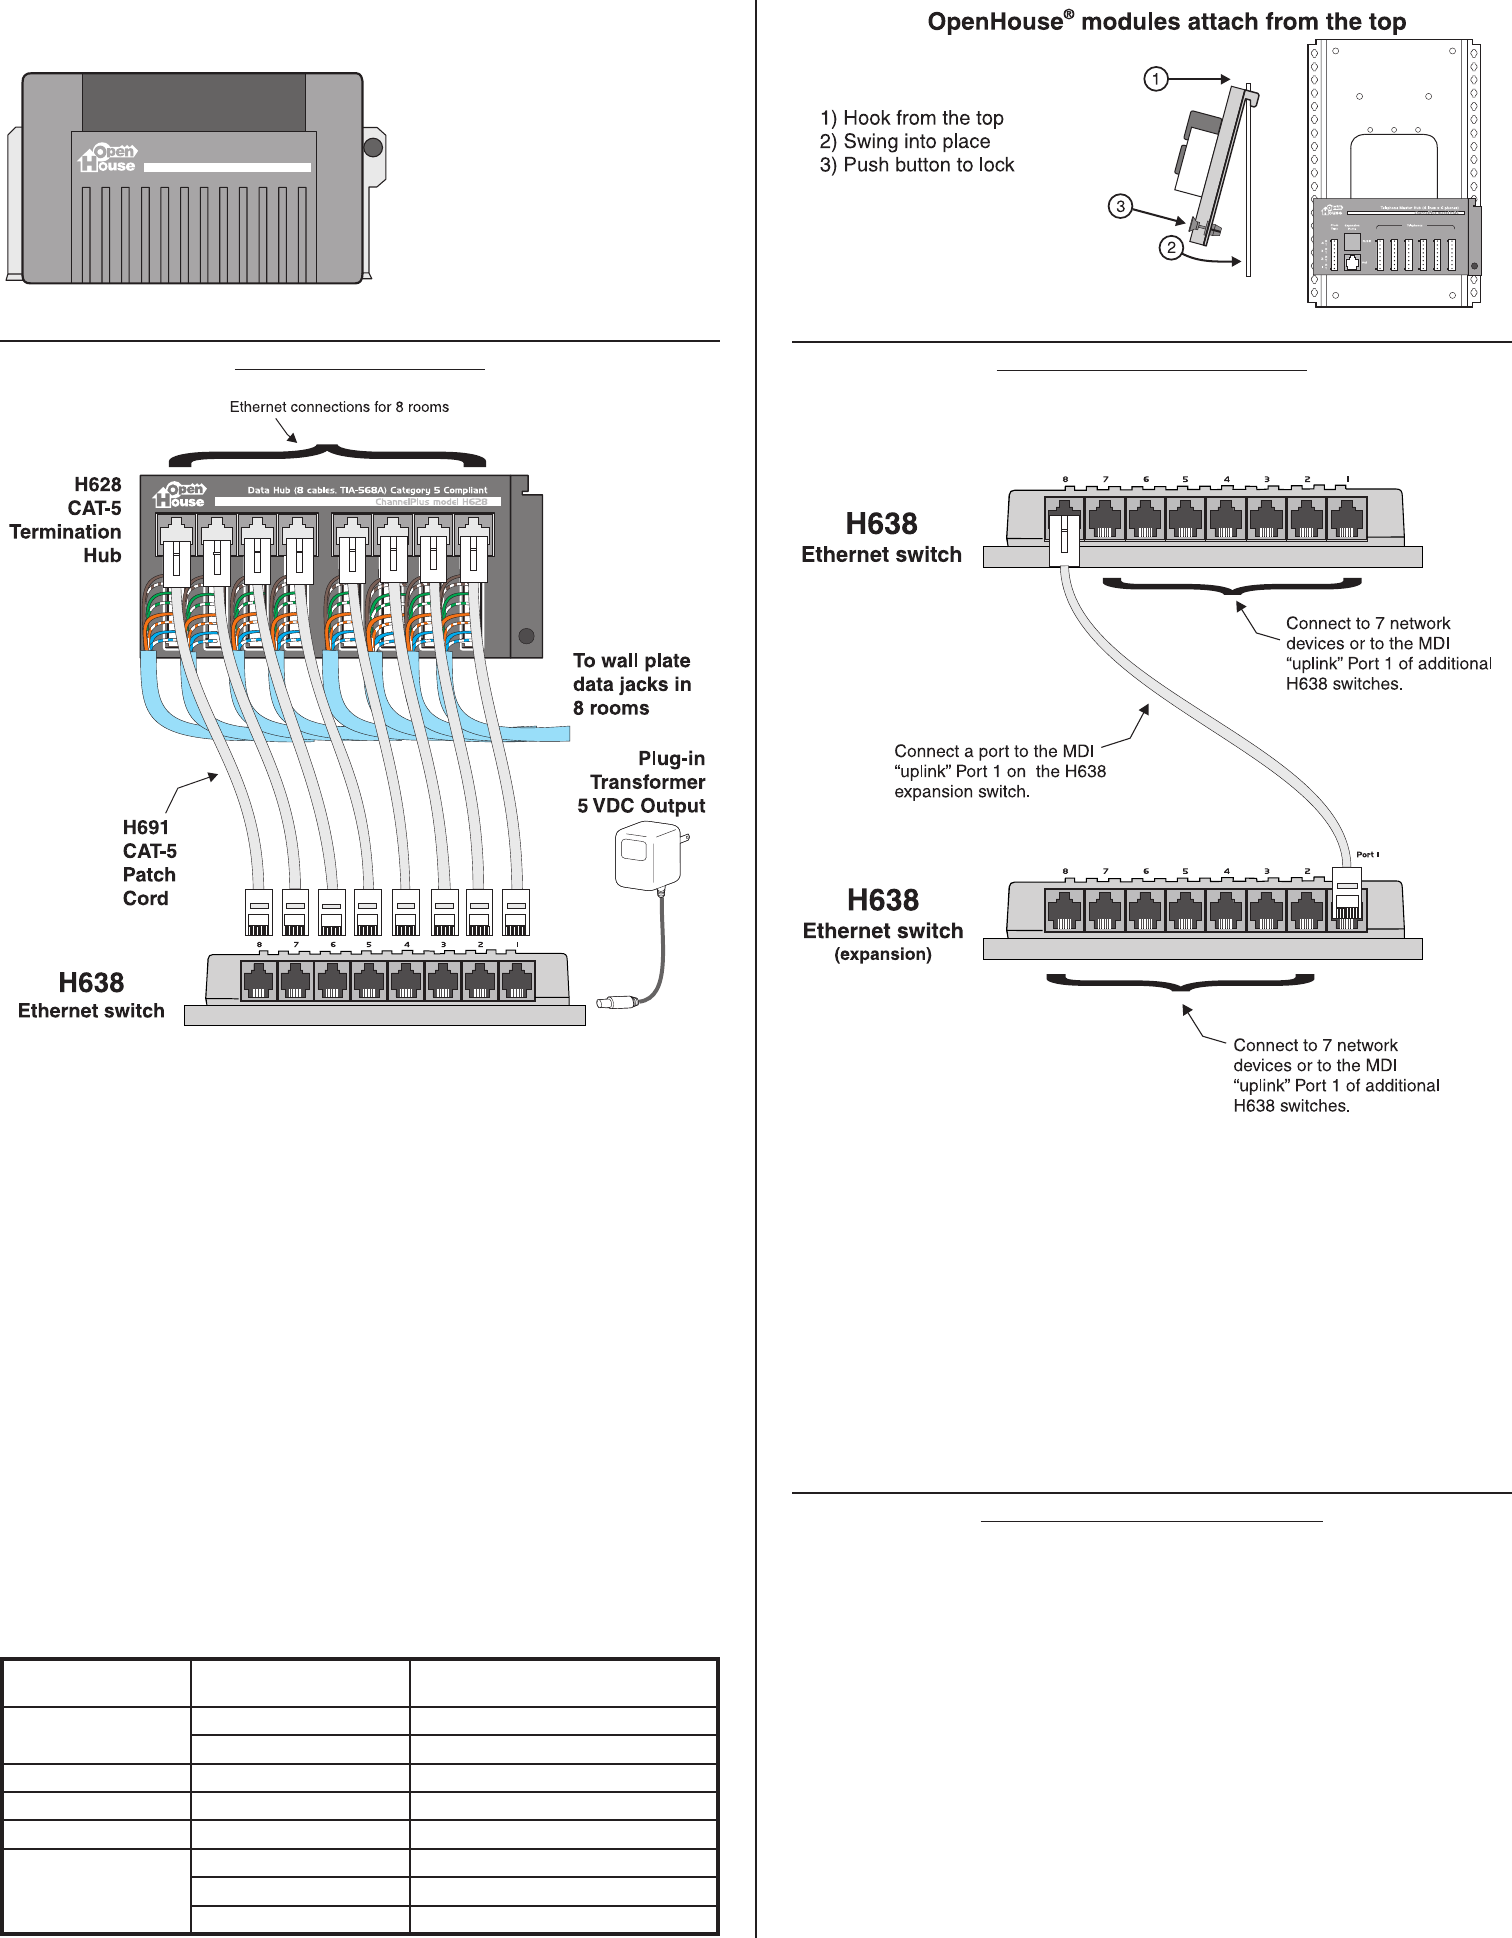 the h638 10/100 ethernet switch creates a home network between up to